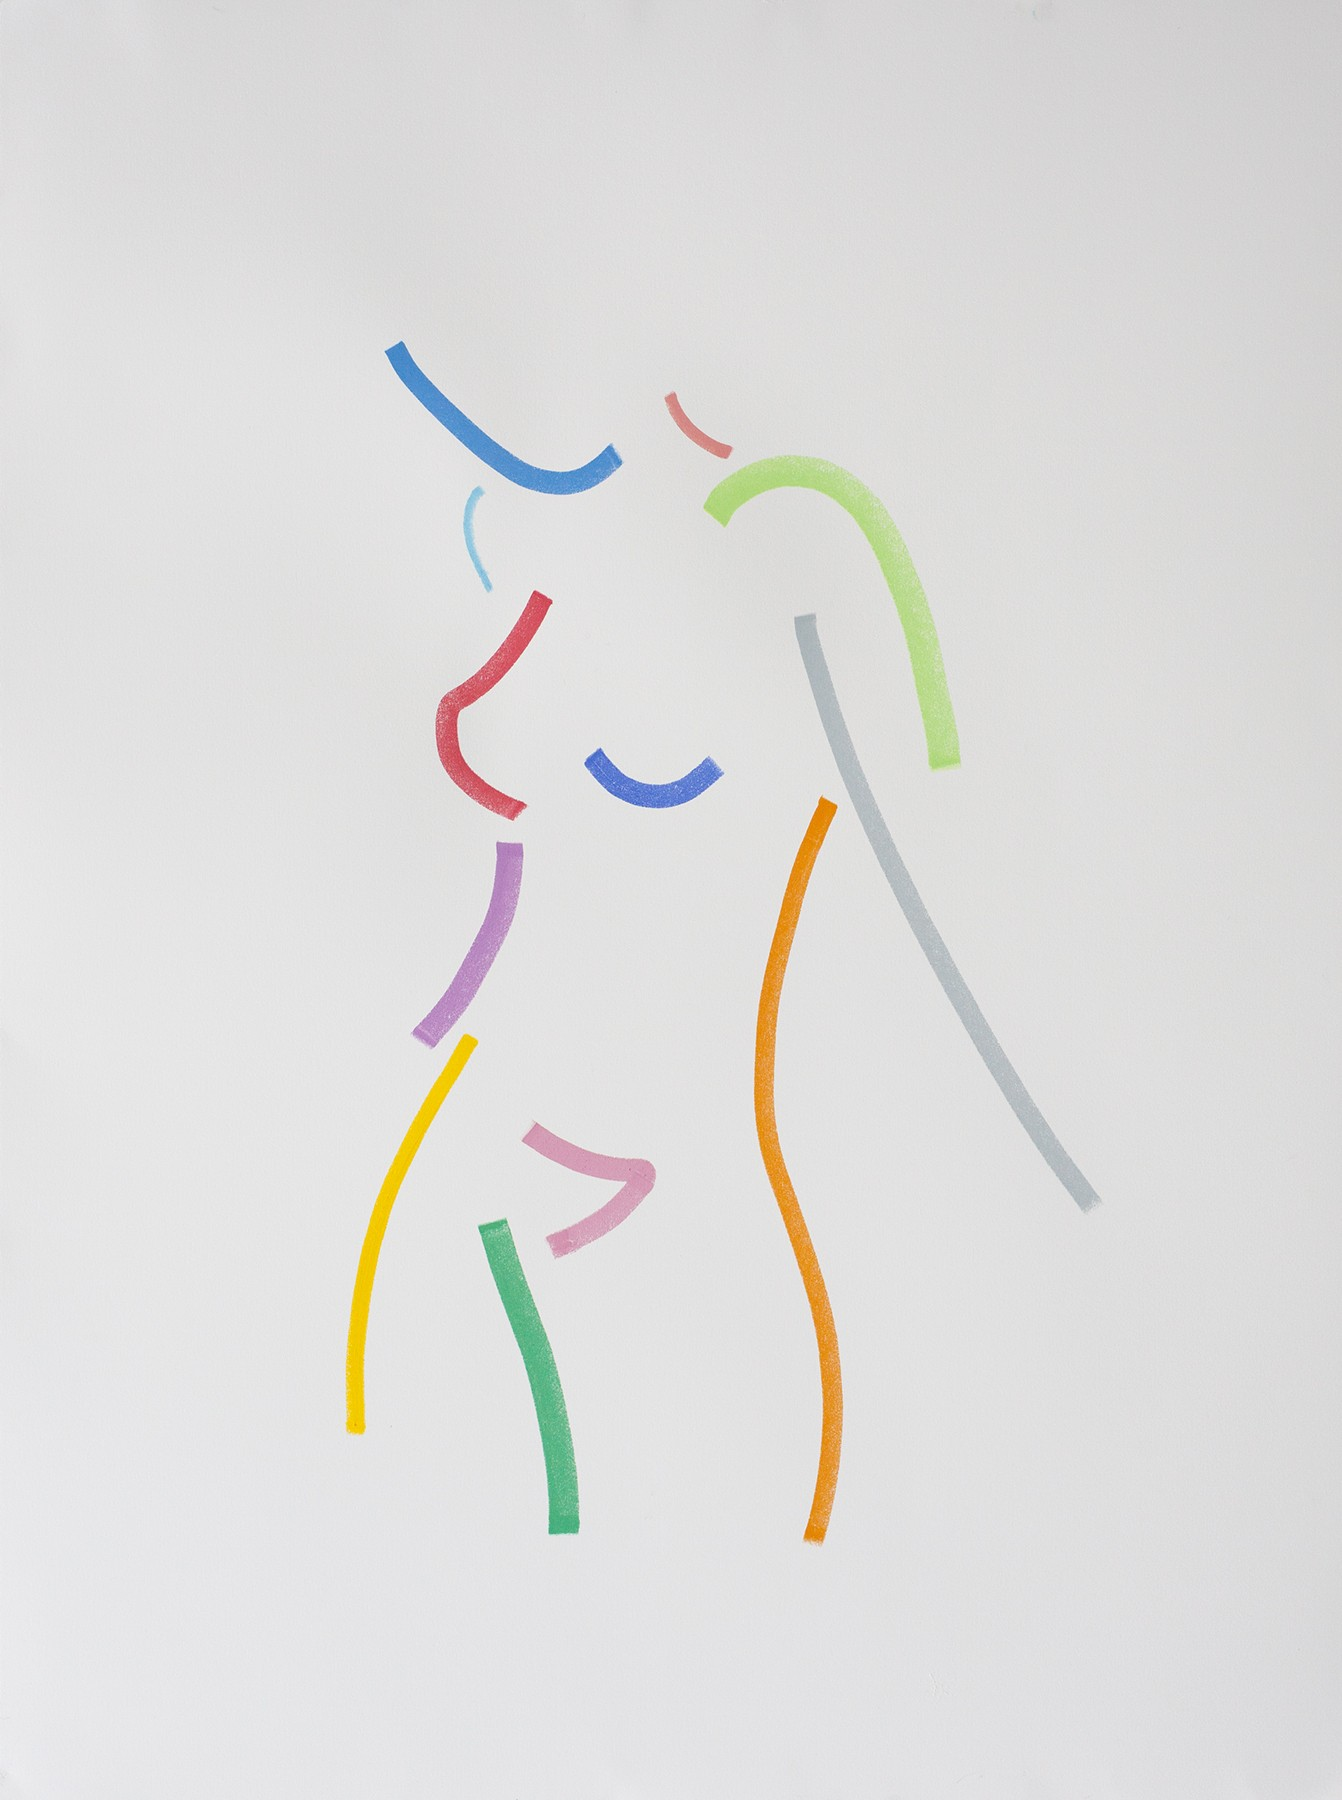 Hock Tee Tan, Standing Nude Colour, 2019, Pastel, 1080 x 820cm, €2225, The HUX Gallery, D16